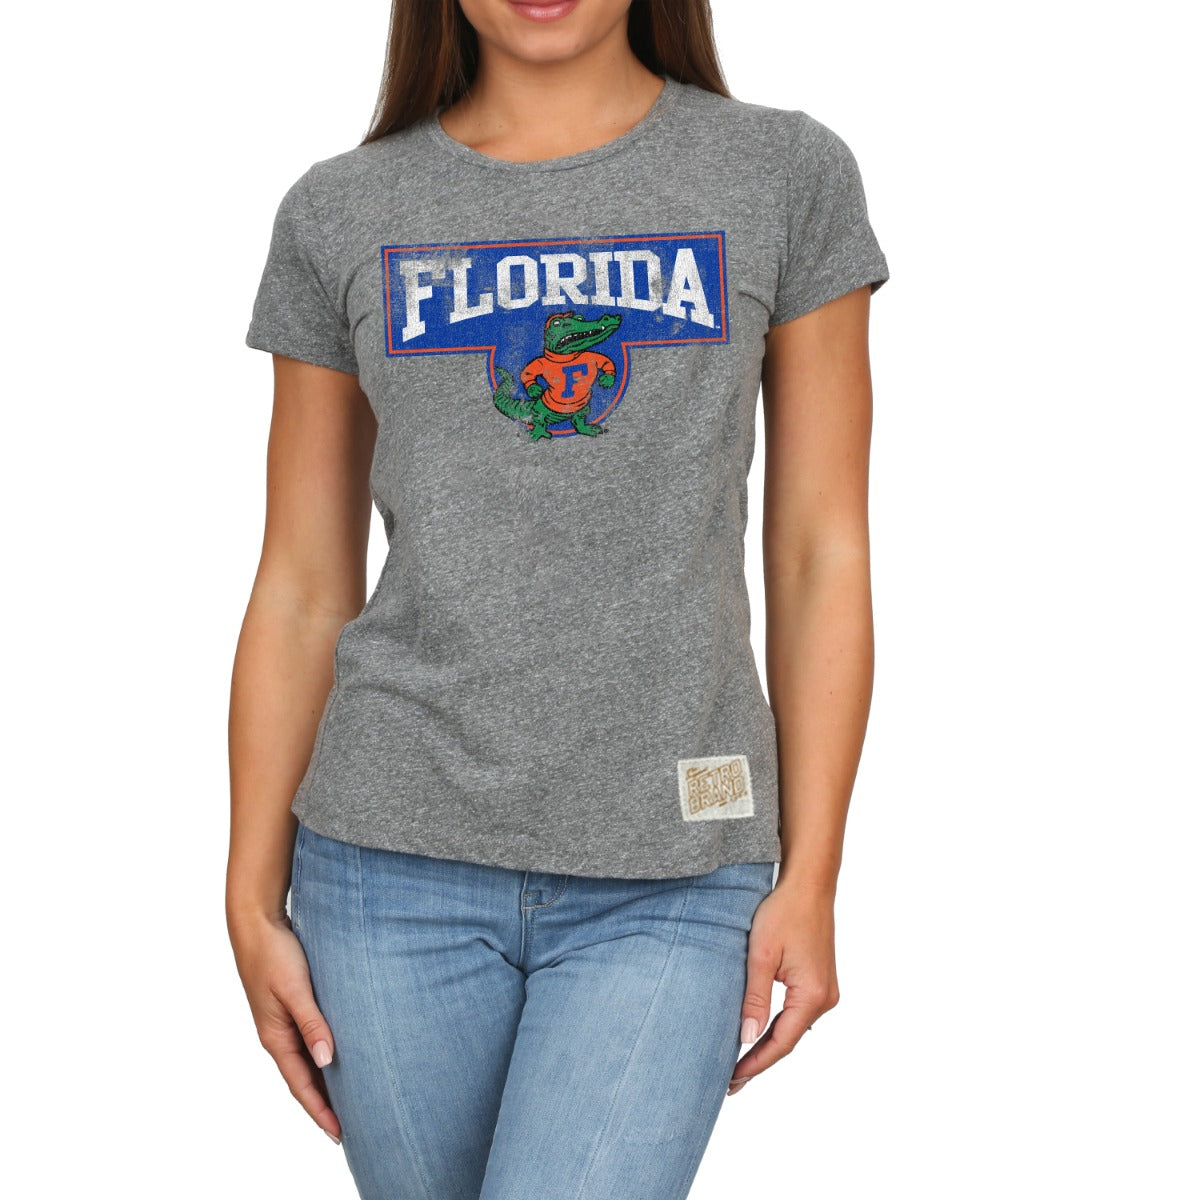 Florida Women's Tri Blend Crew Neck Tee